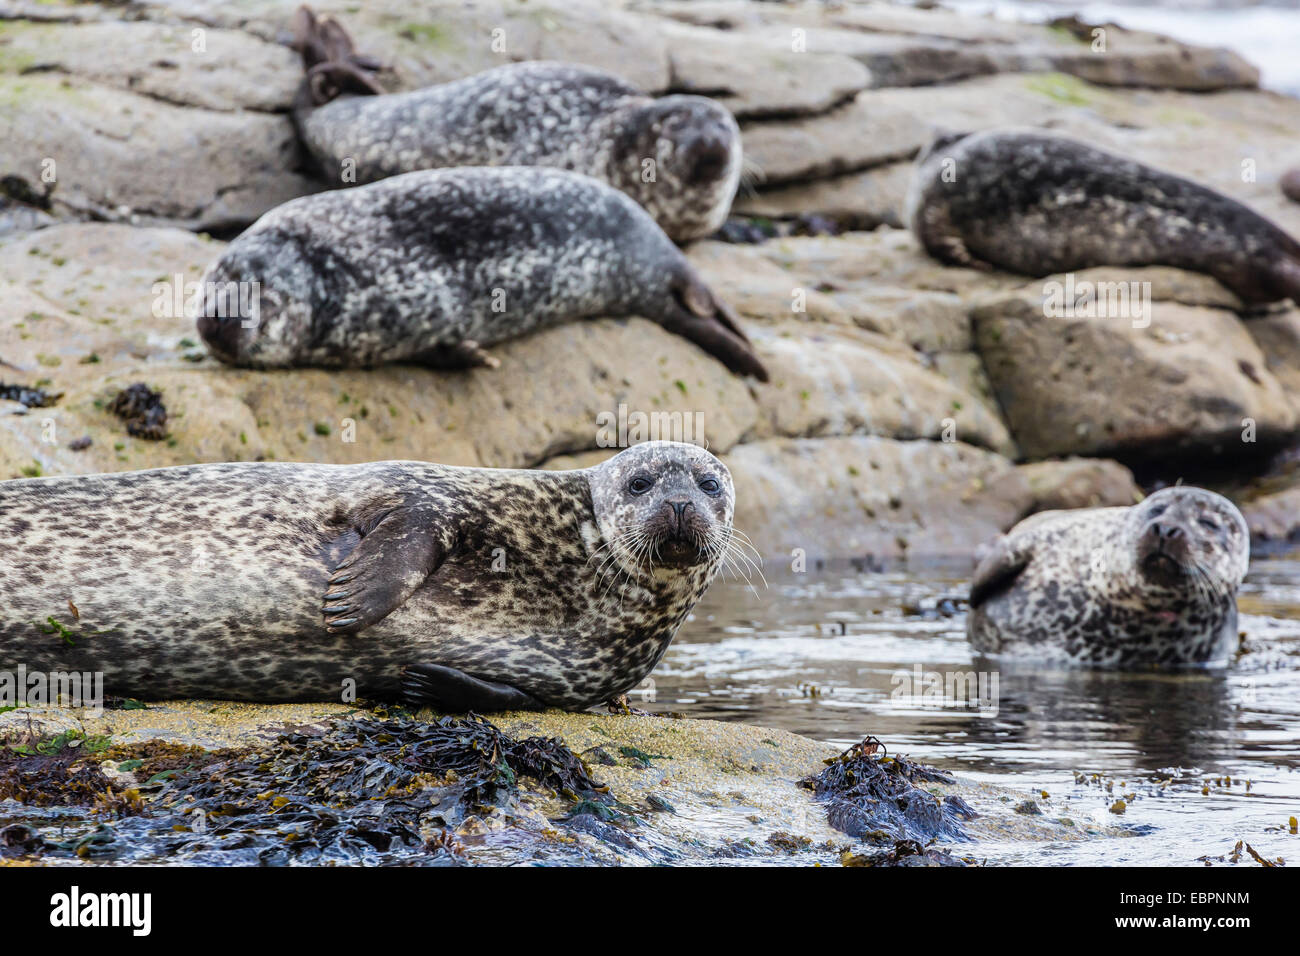 Gray seals (grey seals) (Halichoerus grypus) hauled out on the shoreline on Mainland Island, Shetland Isles, Scotland, Stock Photo